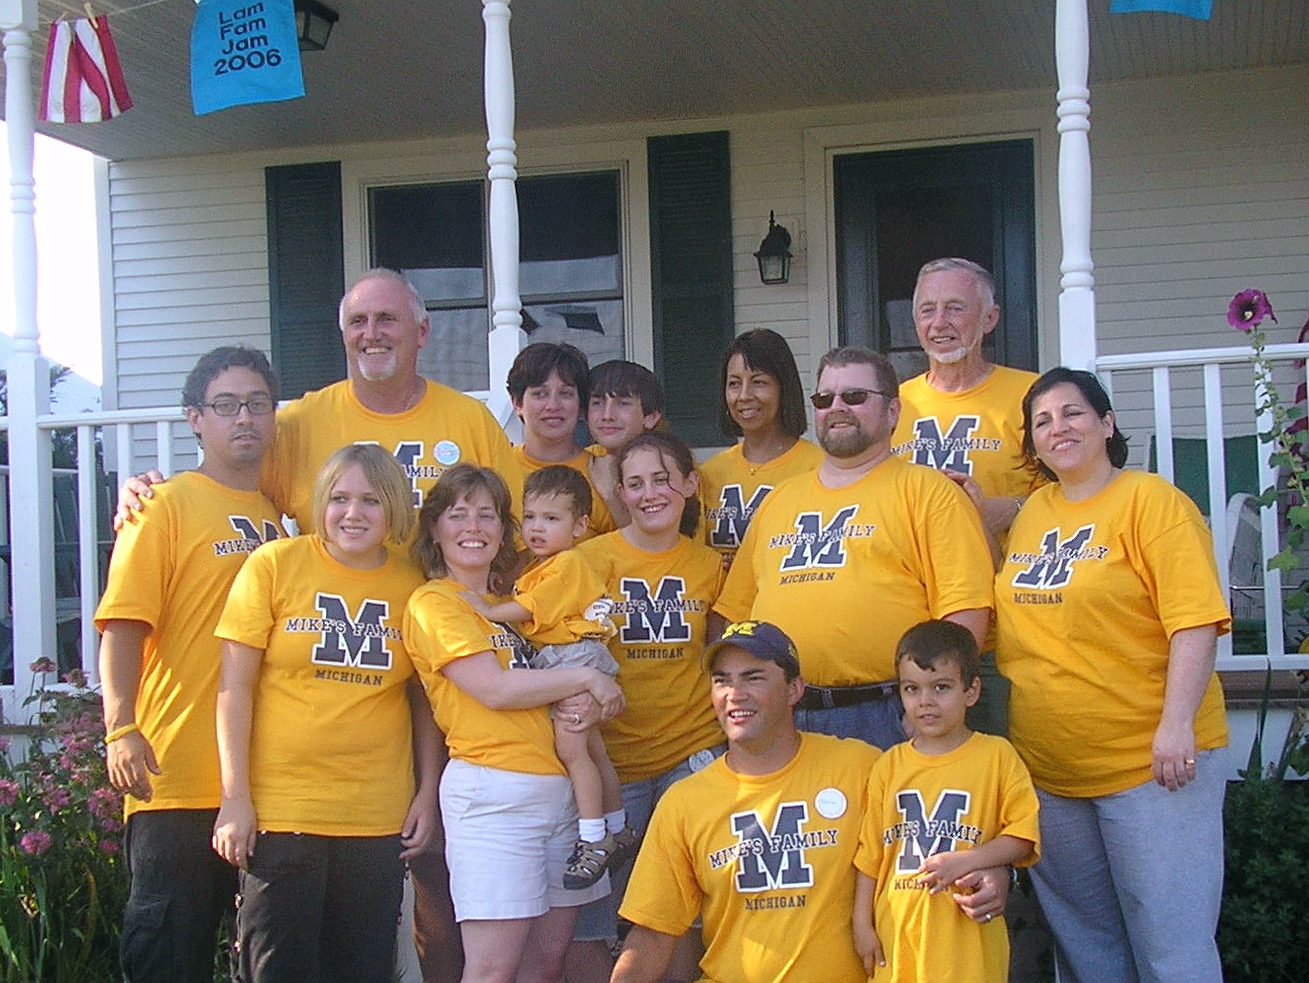 the michael lammers family t shirt photo - Family Reunion Shirt Design Ideas